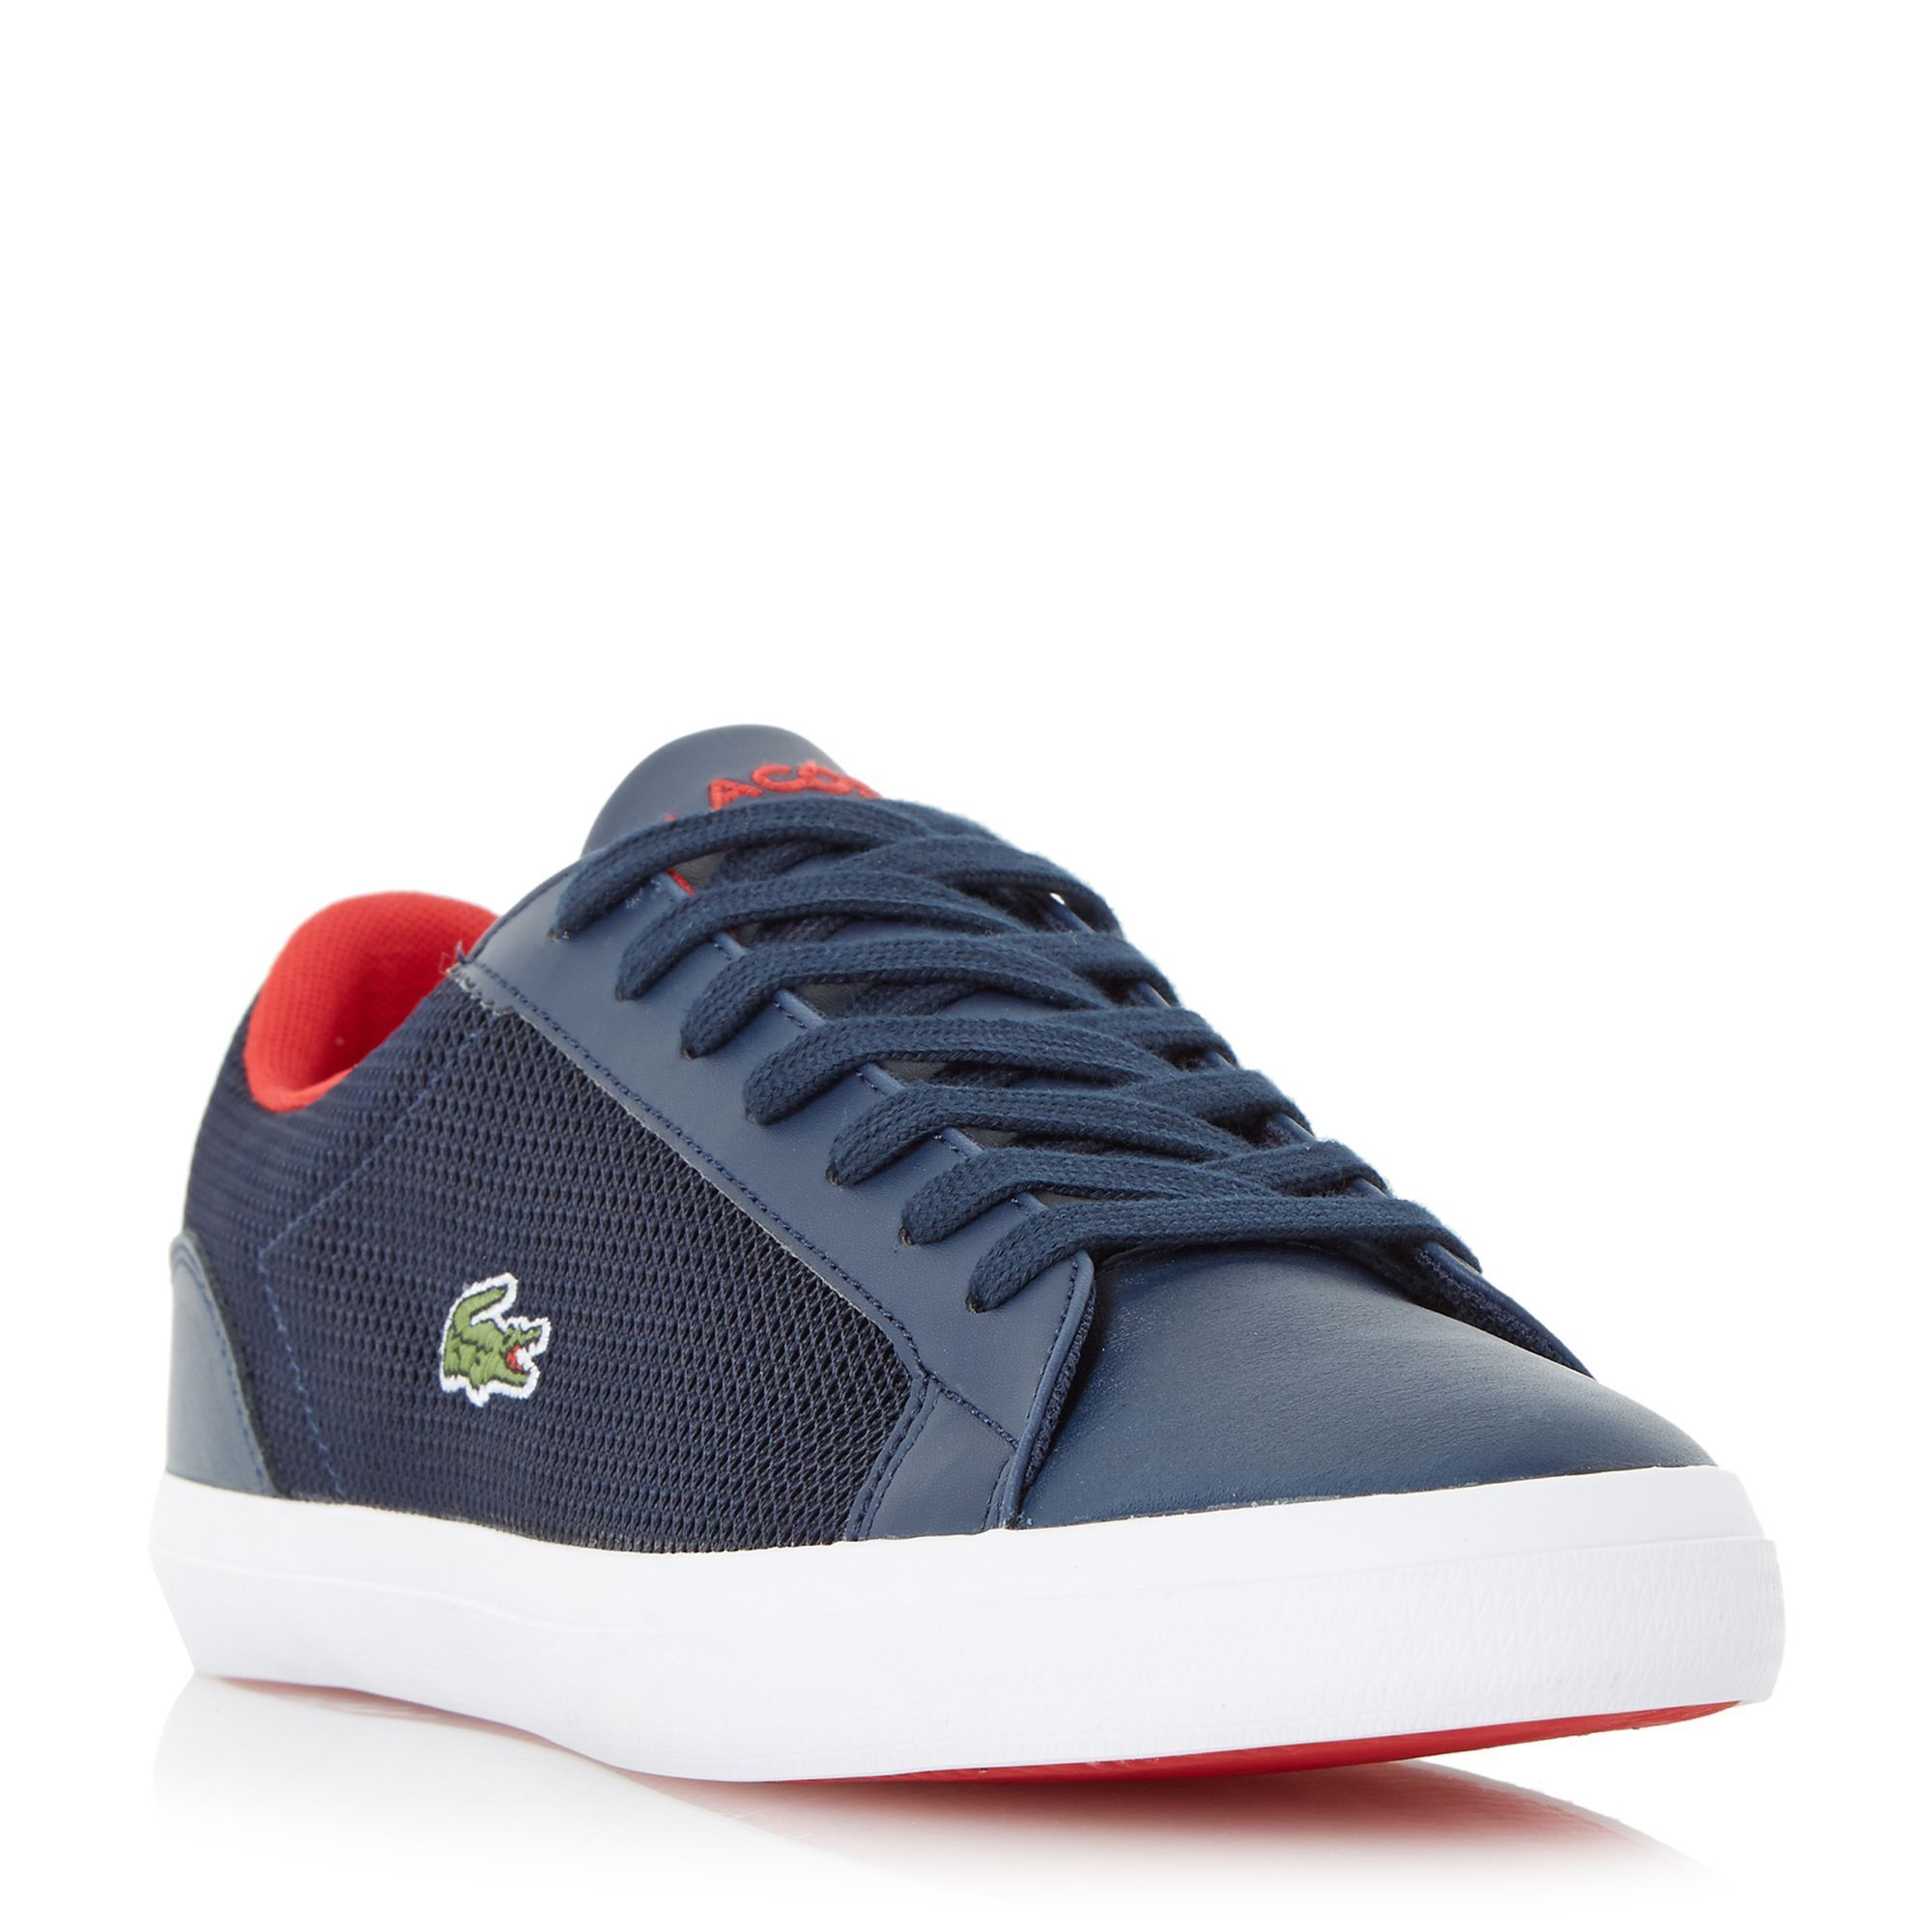 7943ceb813bb Lacoste Lerond mesh detail leather trainer